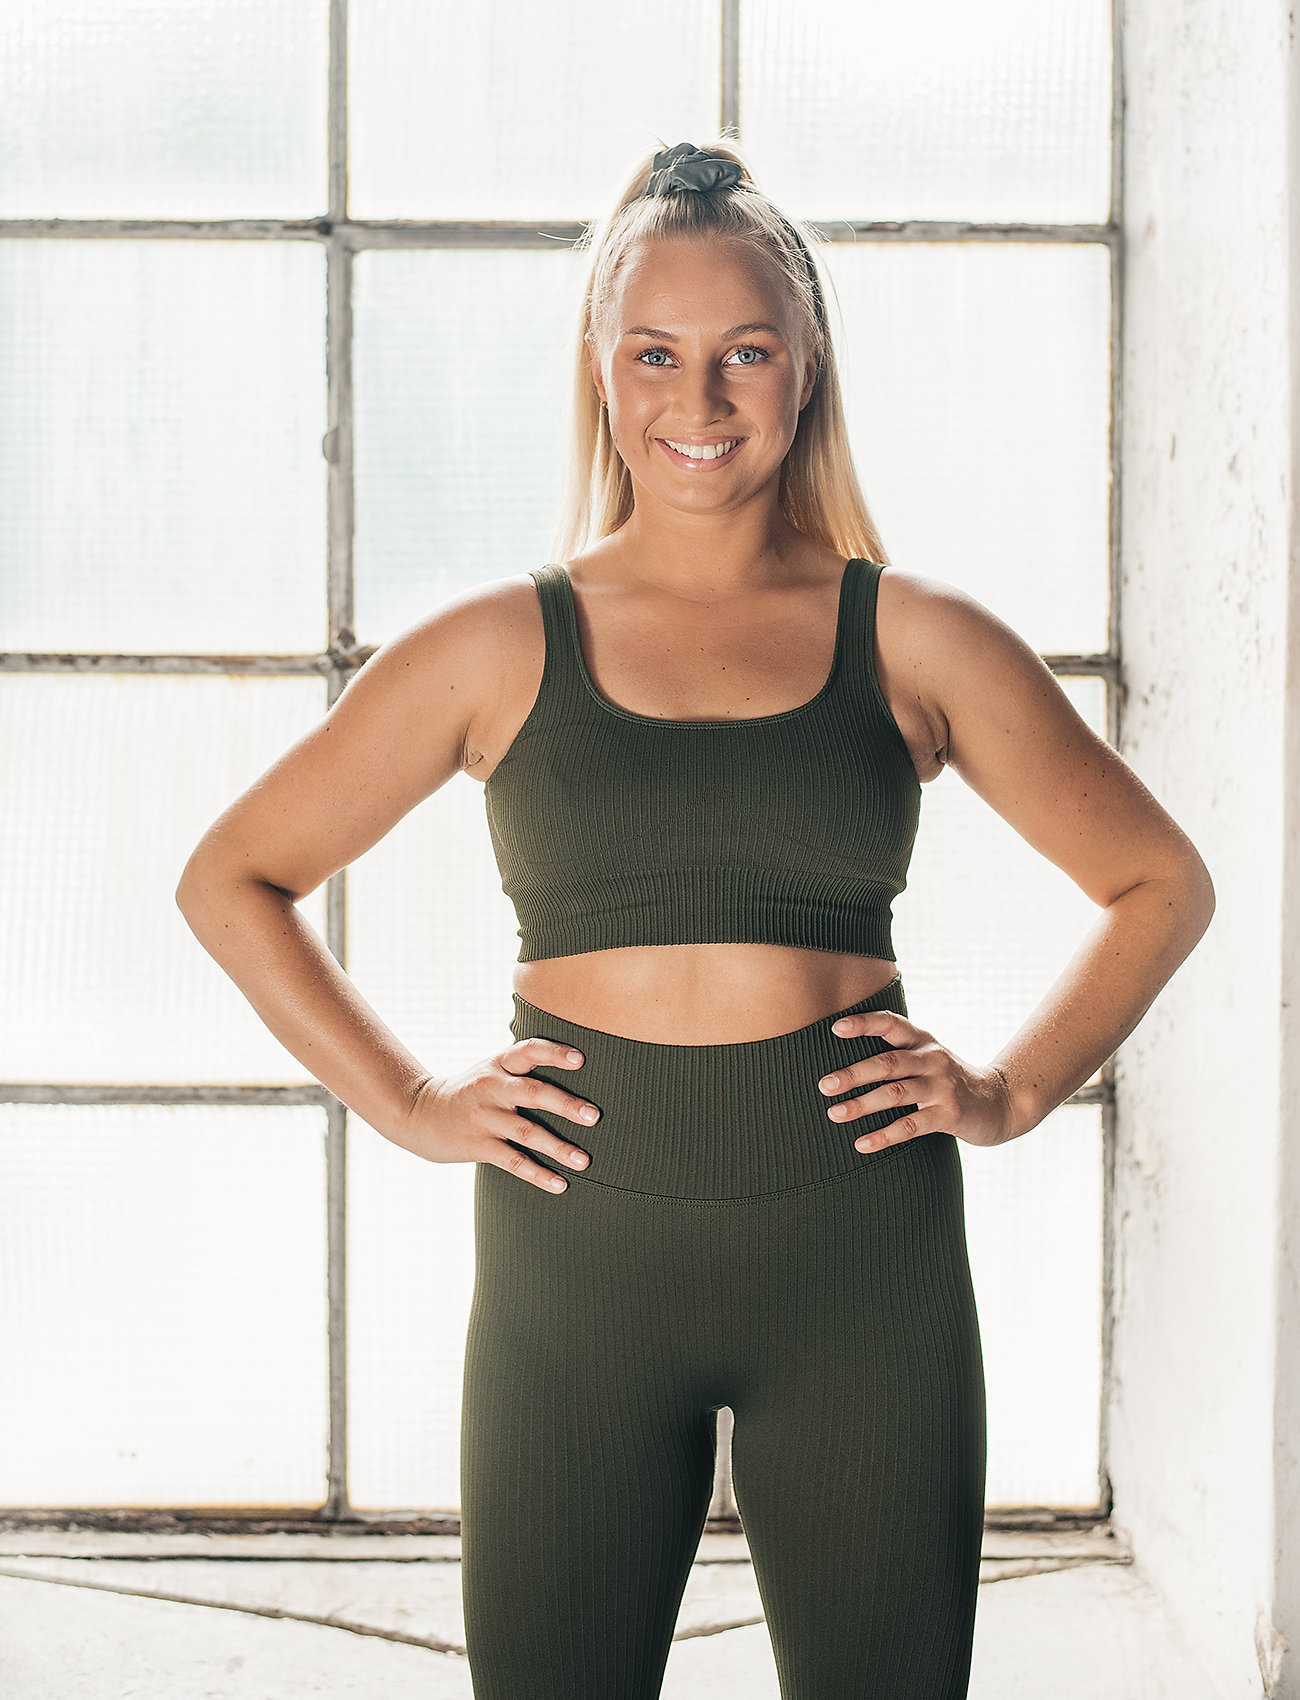 AIM'N - Khaki Ribbed Seamless Bra - sport bras: medium - khaki - 0